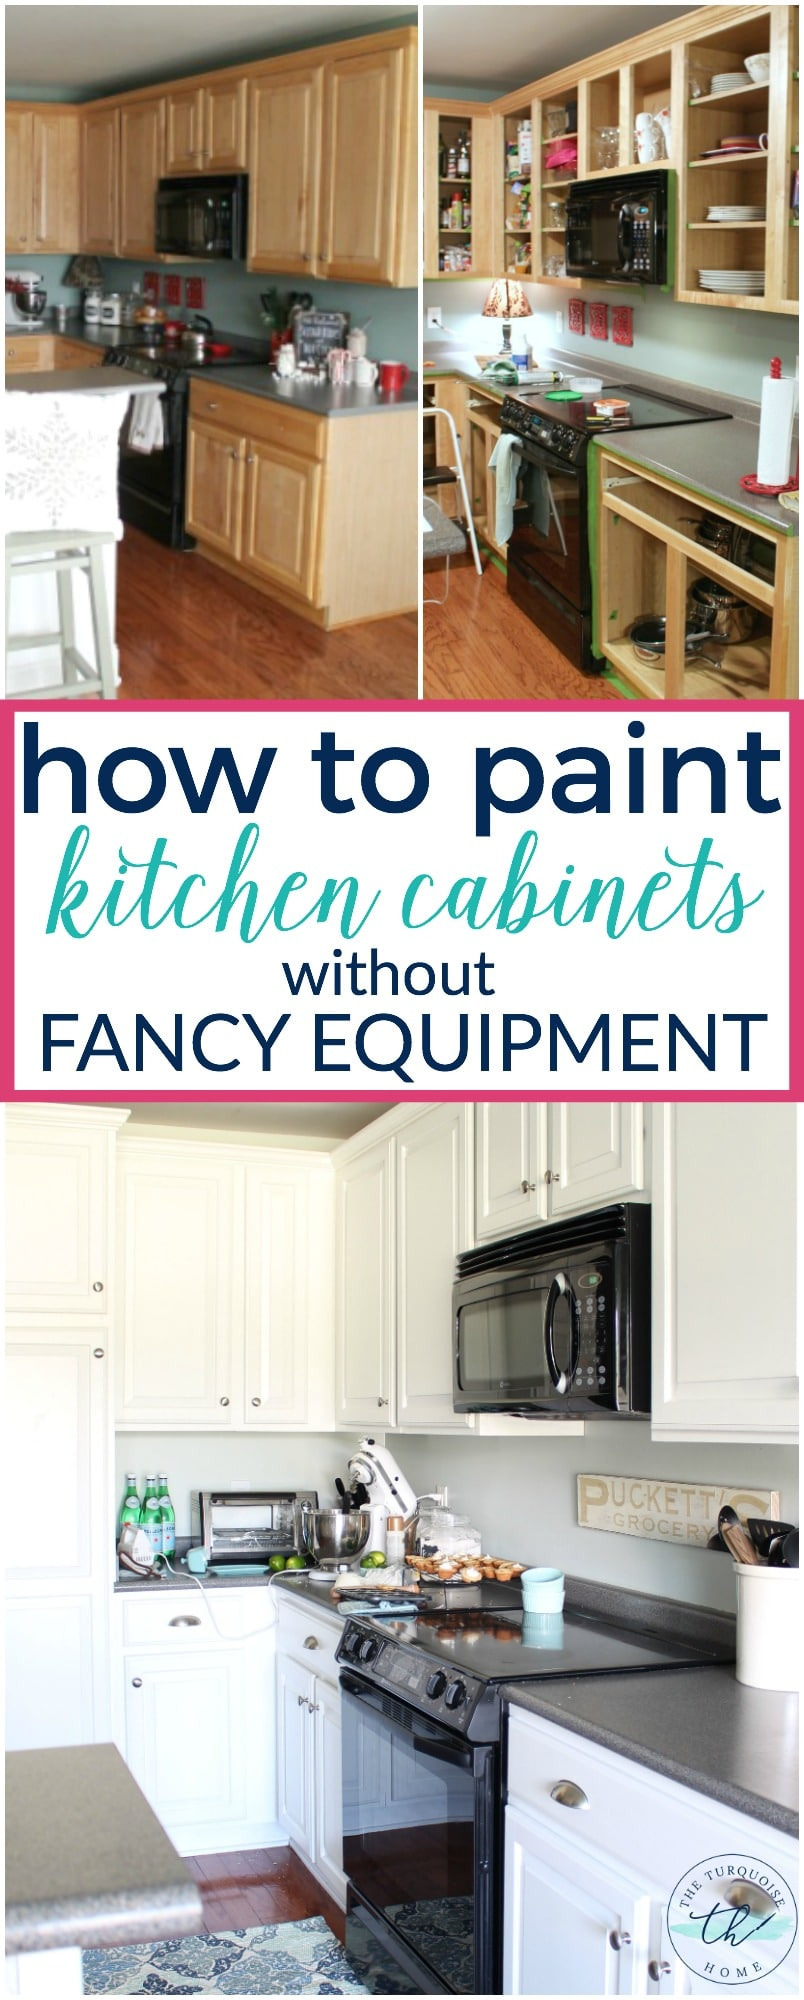 How to Paint Cabinet Doors without Brush Marks Beautiful How to Paint Kitchen Cabinets without Fancy Equipment